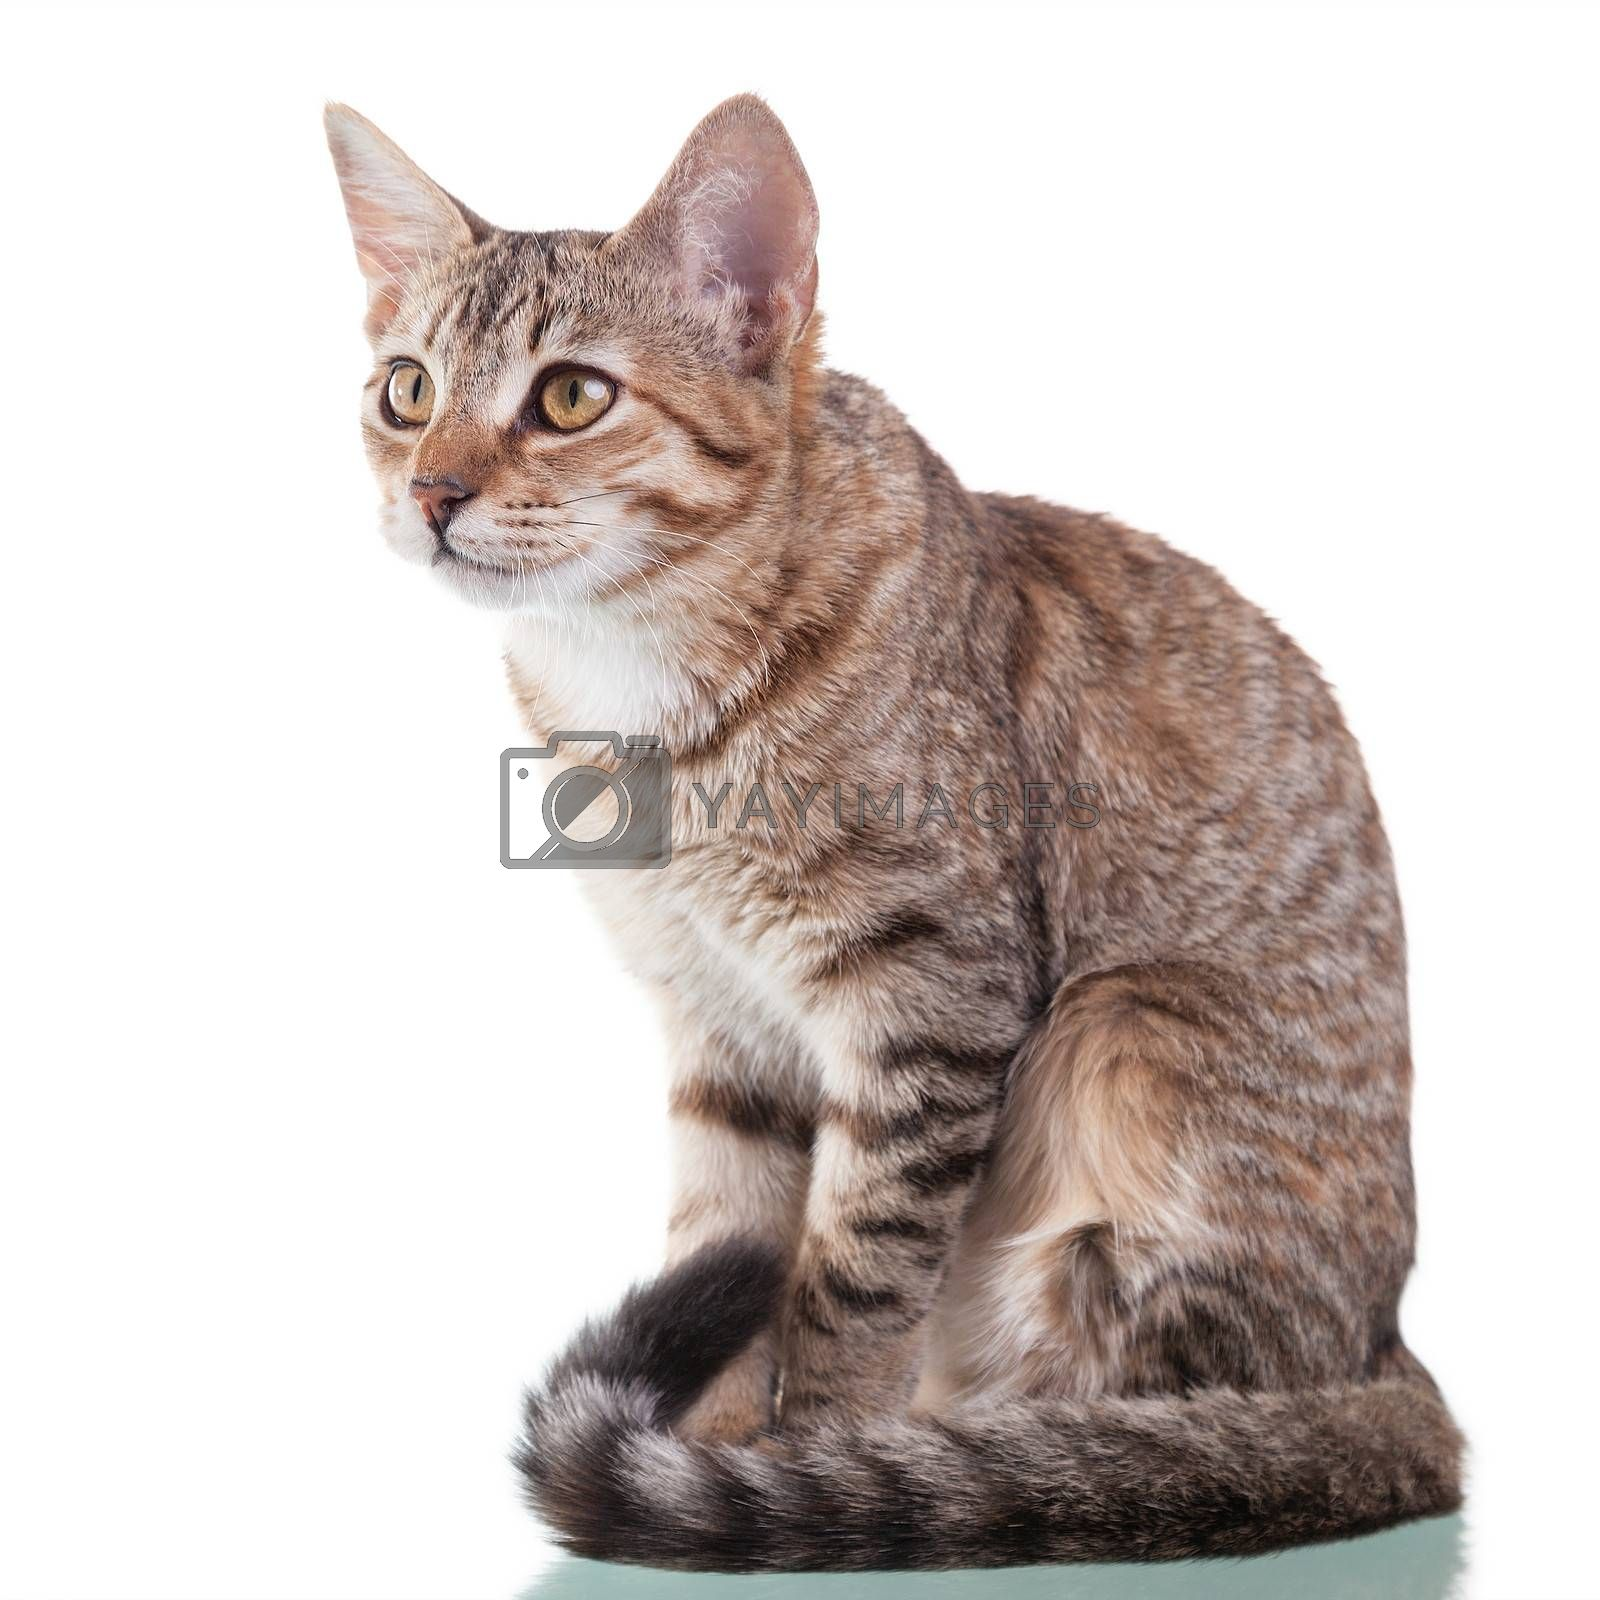 Photo of a brown striped kitten sitting down, isolated on white background. Studio shot.